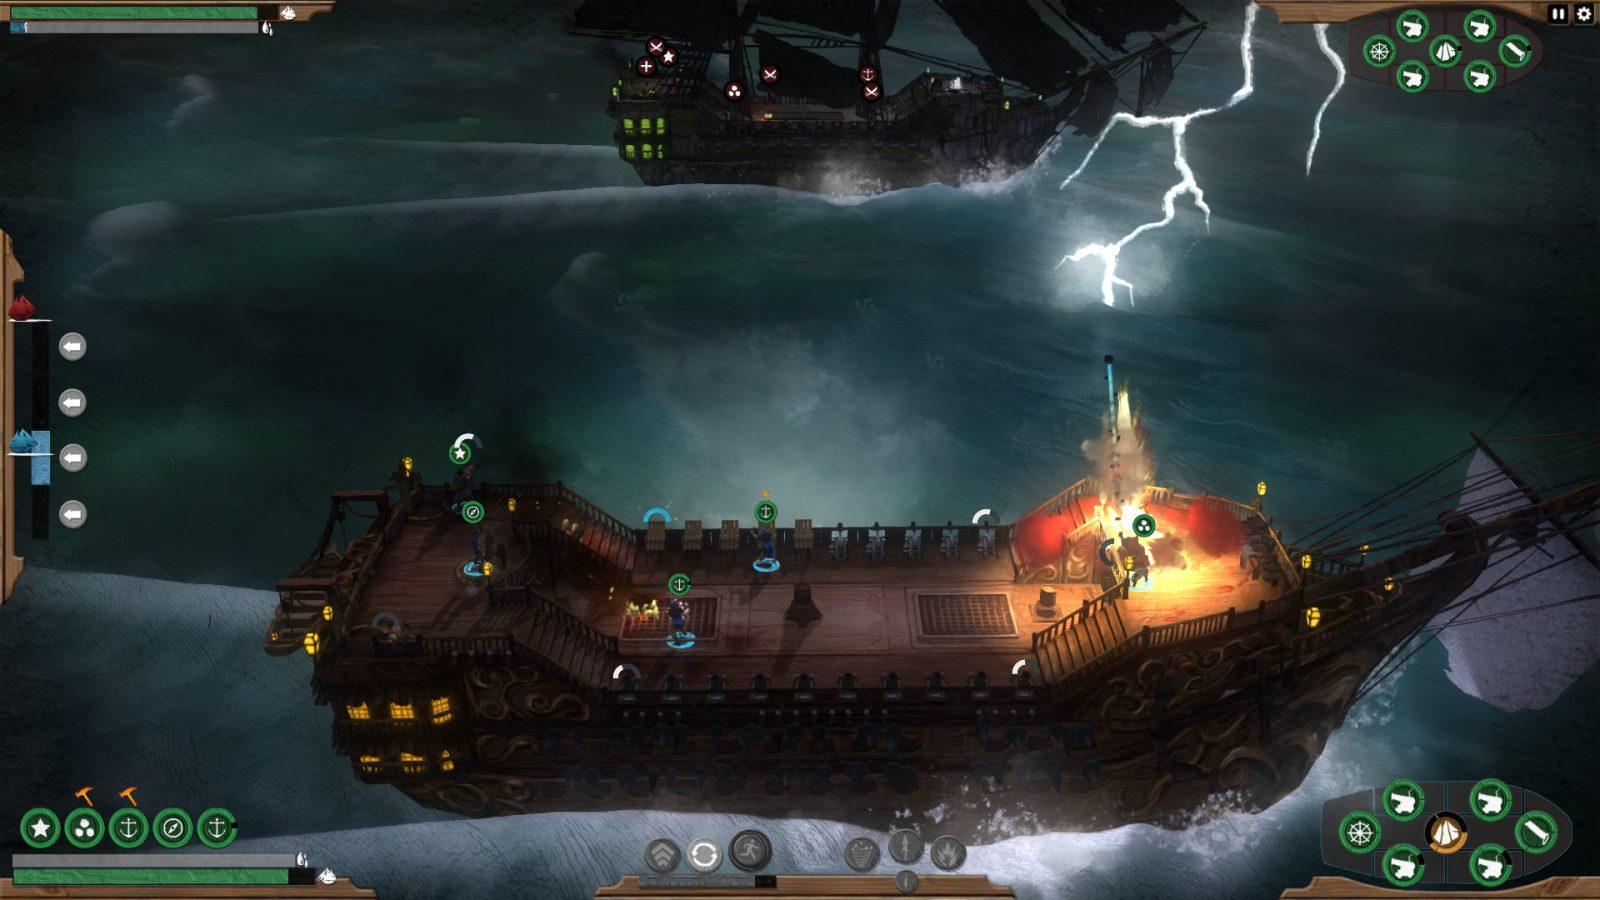 Blade of the Assassin Update Now Live for Abandon Ship